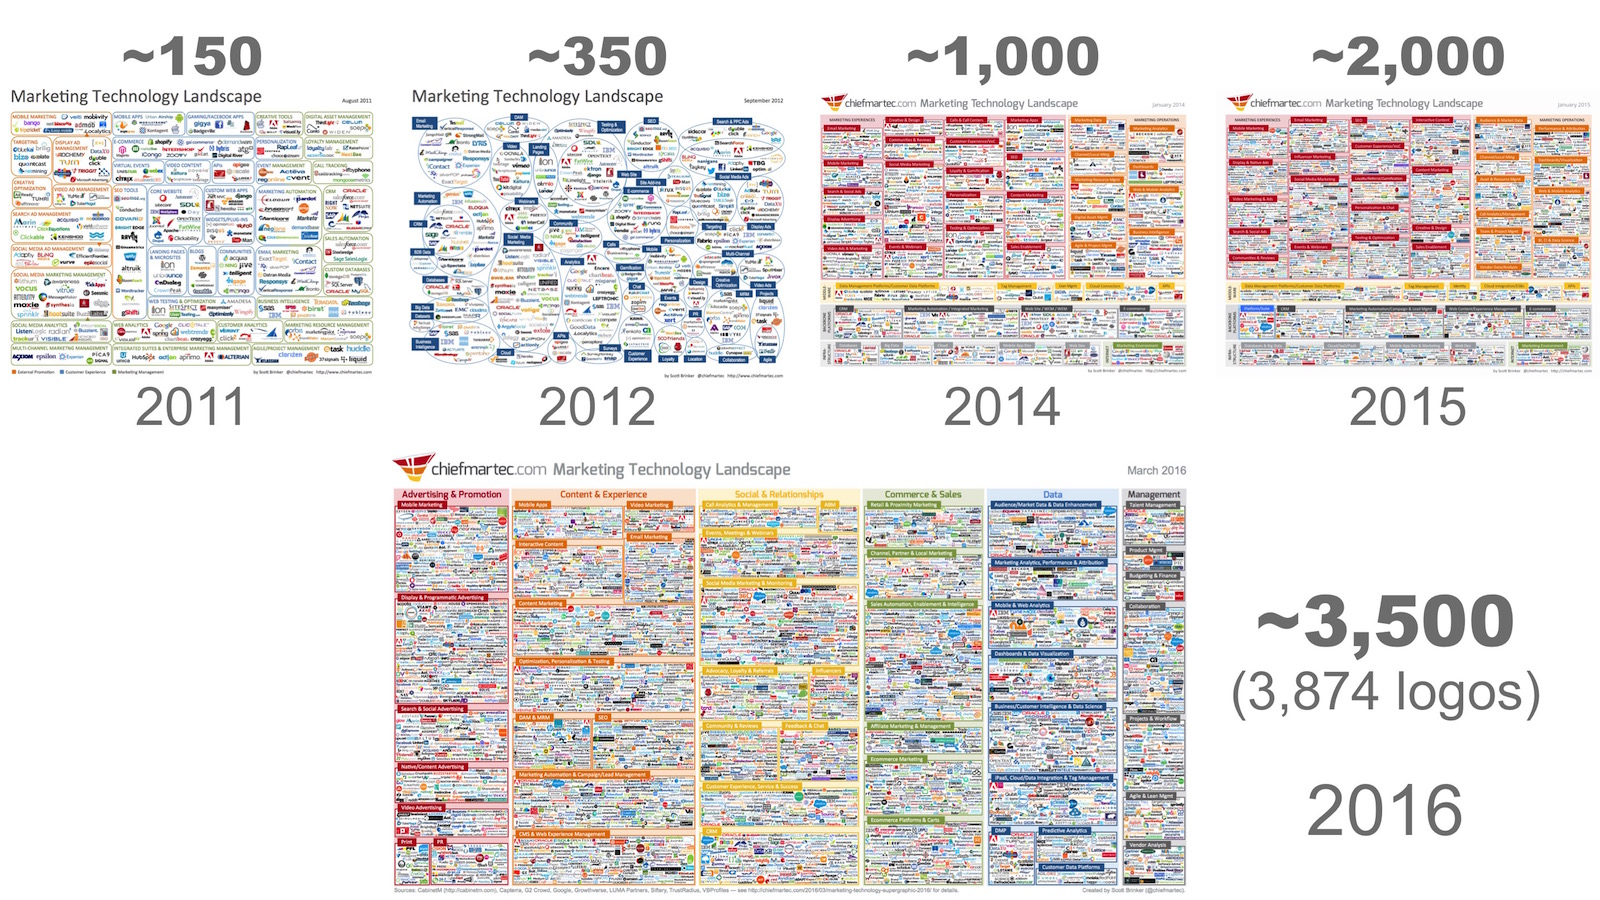 marketing_tech_landscape_timeline_2016.jpg